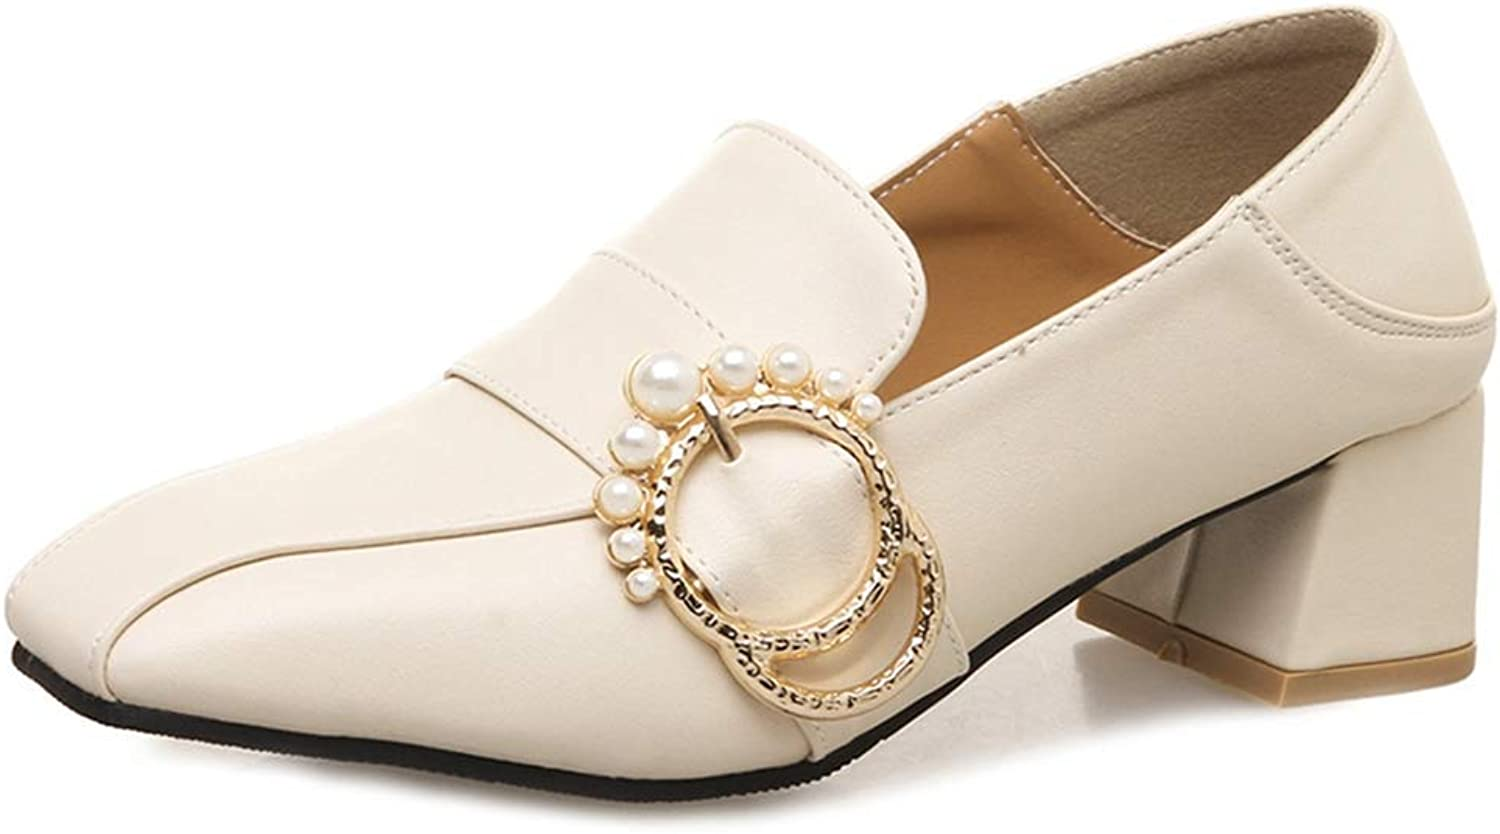 Women's Square Toe Oxford Loafer shoes with Buckle Slip-On Chunky Mid Block Heel Backless Pump Brogue